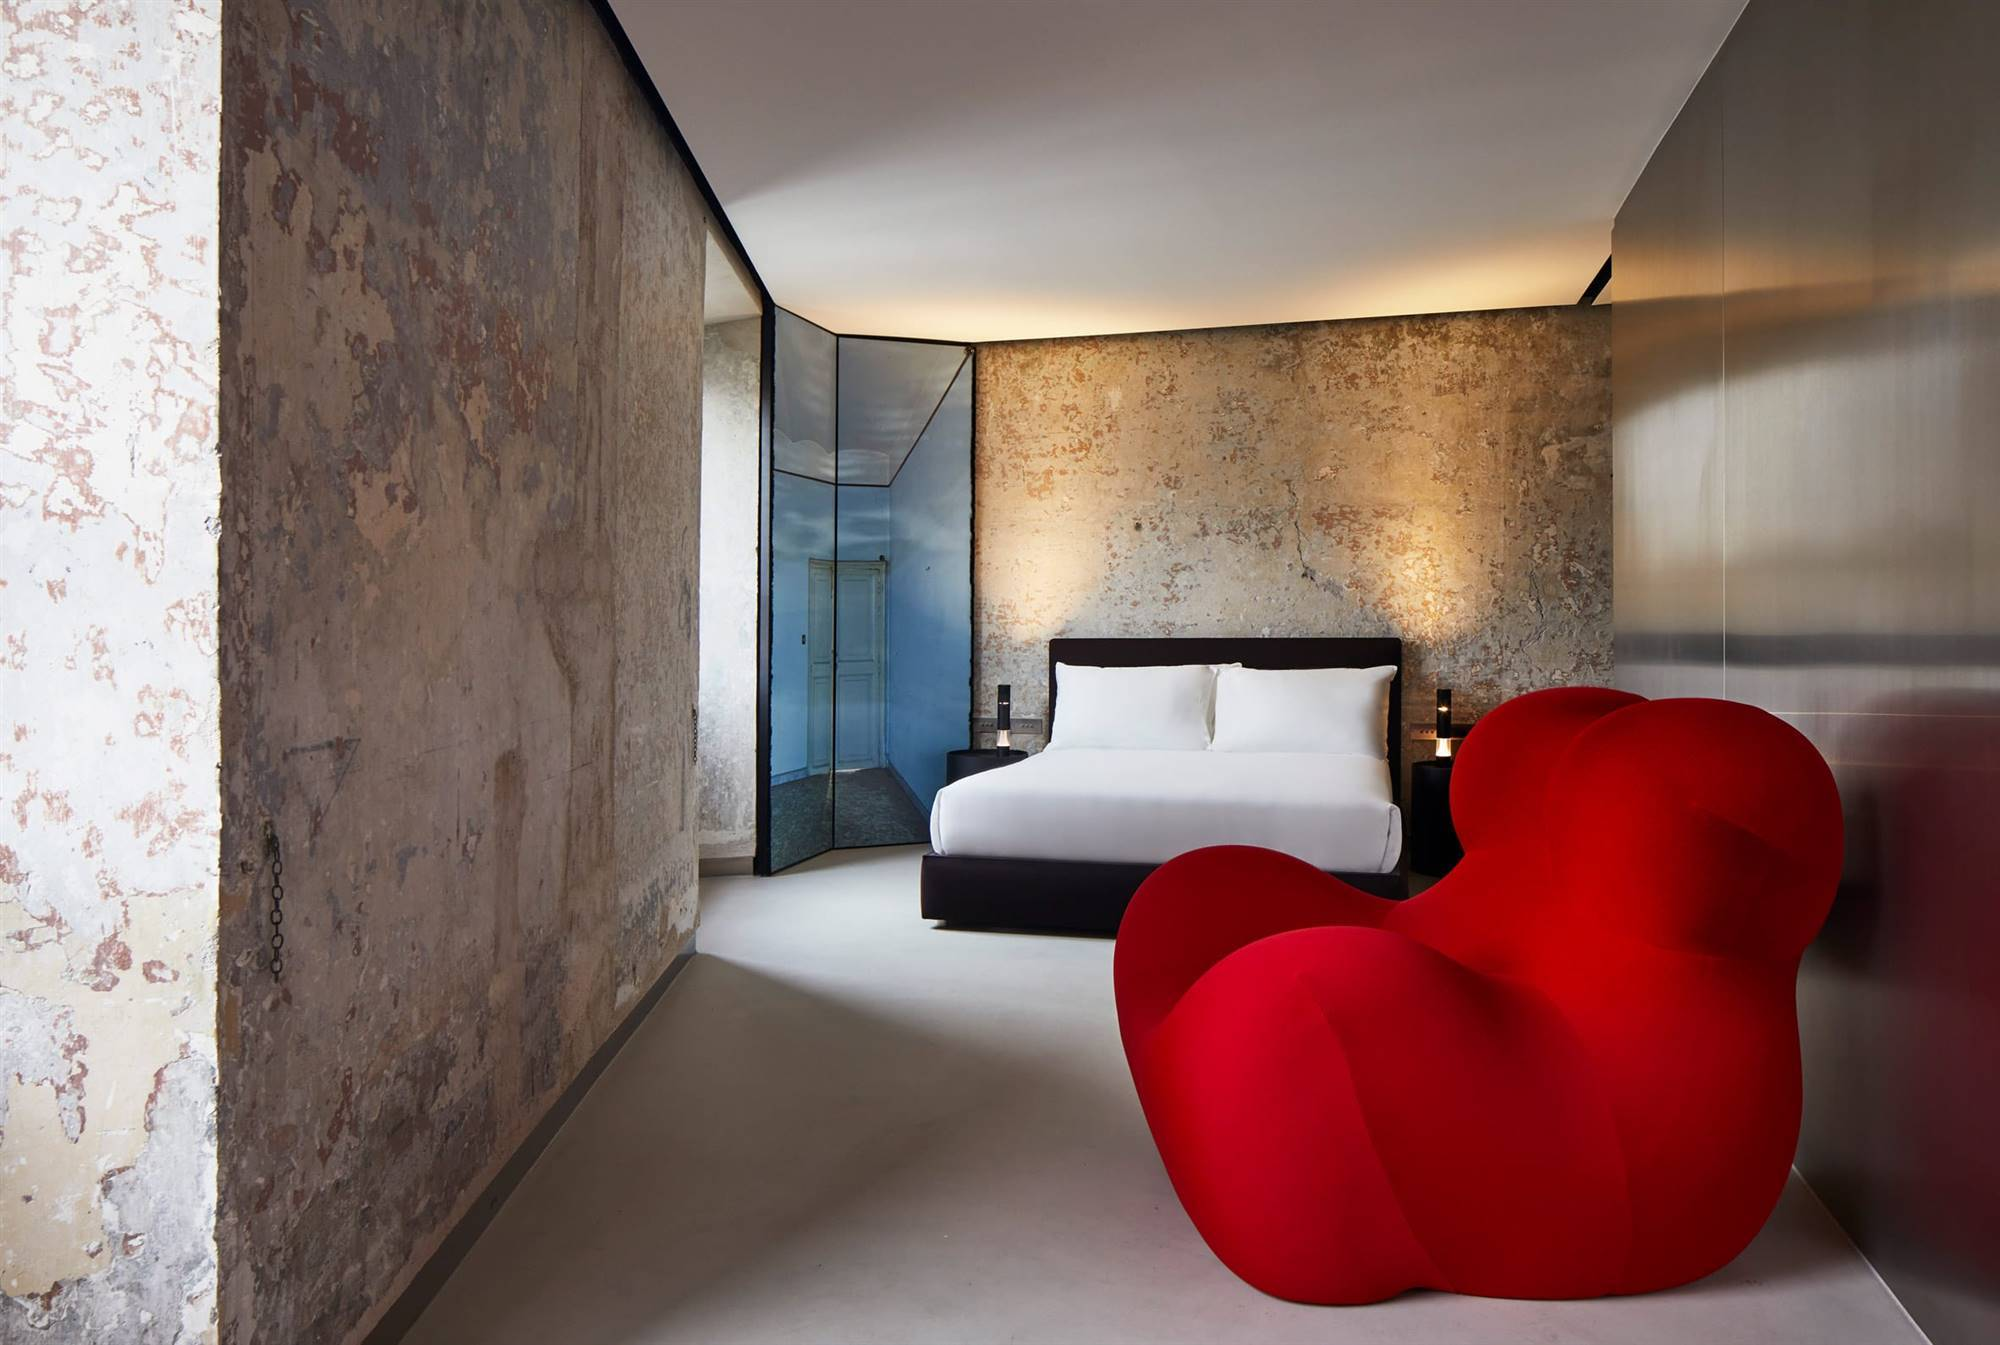 Hotel The Rooms of Rome, por Jean Nouvel.